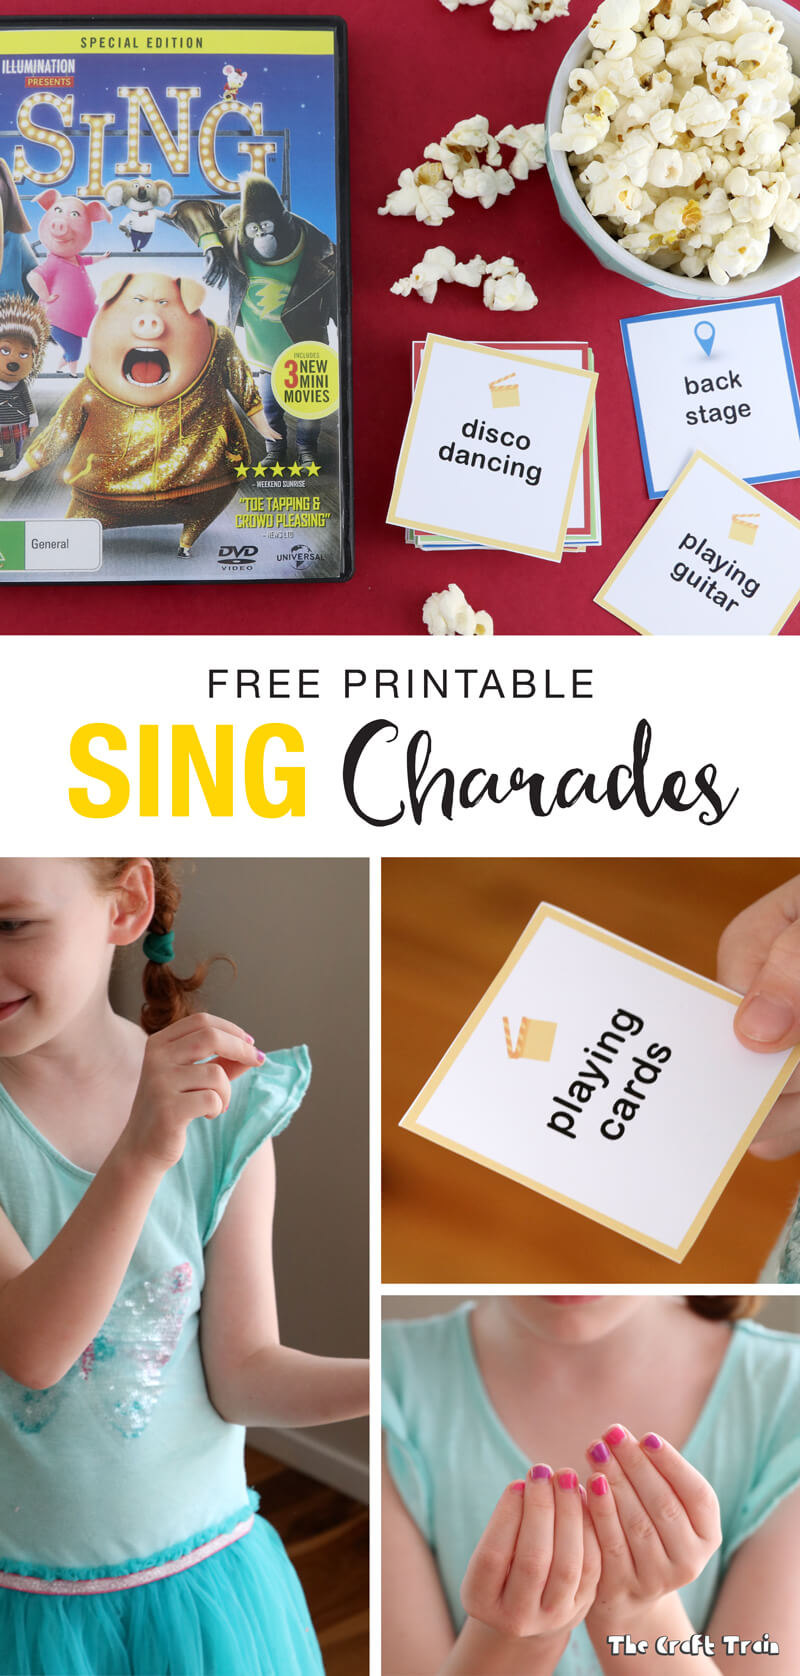 A free set of printable charades cards inspired by the movie SING, now on Blu-ray and DVD. Lots of big belly-laughs guaranteed! {sponsored}